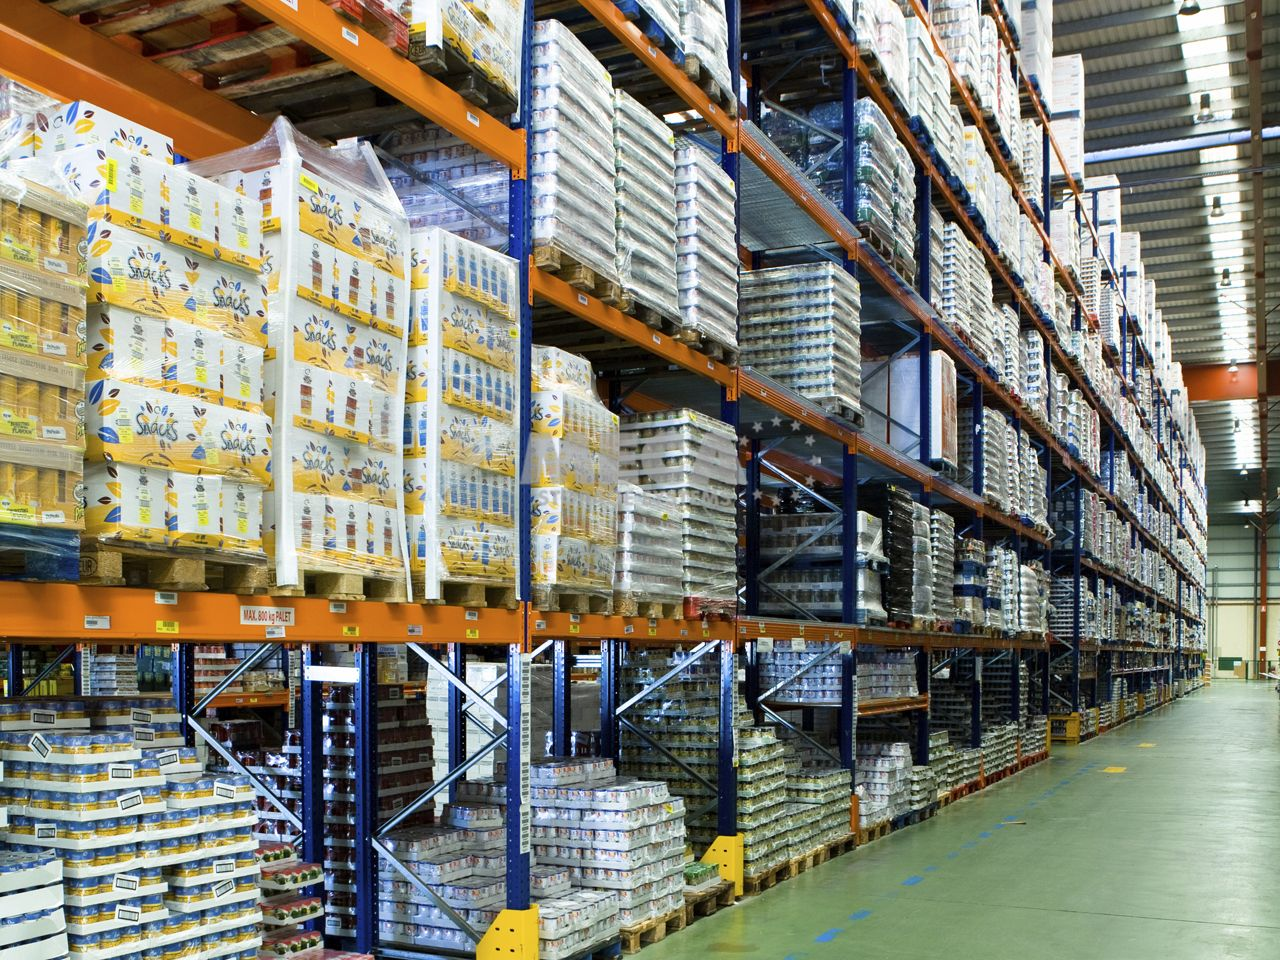 pallet shelving / storage warehouse / for heavy loads - meca storage